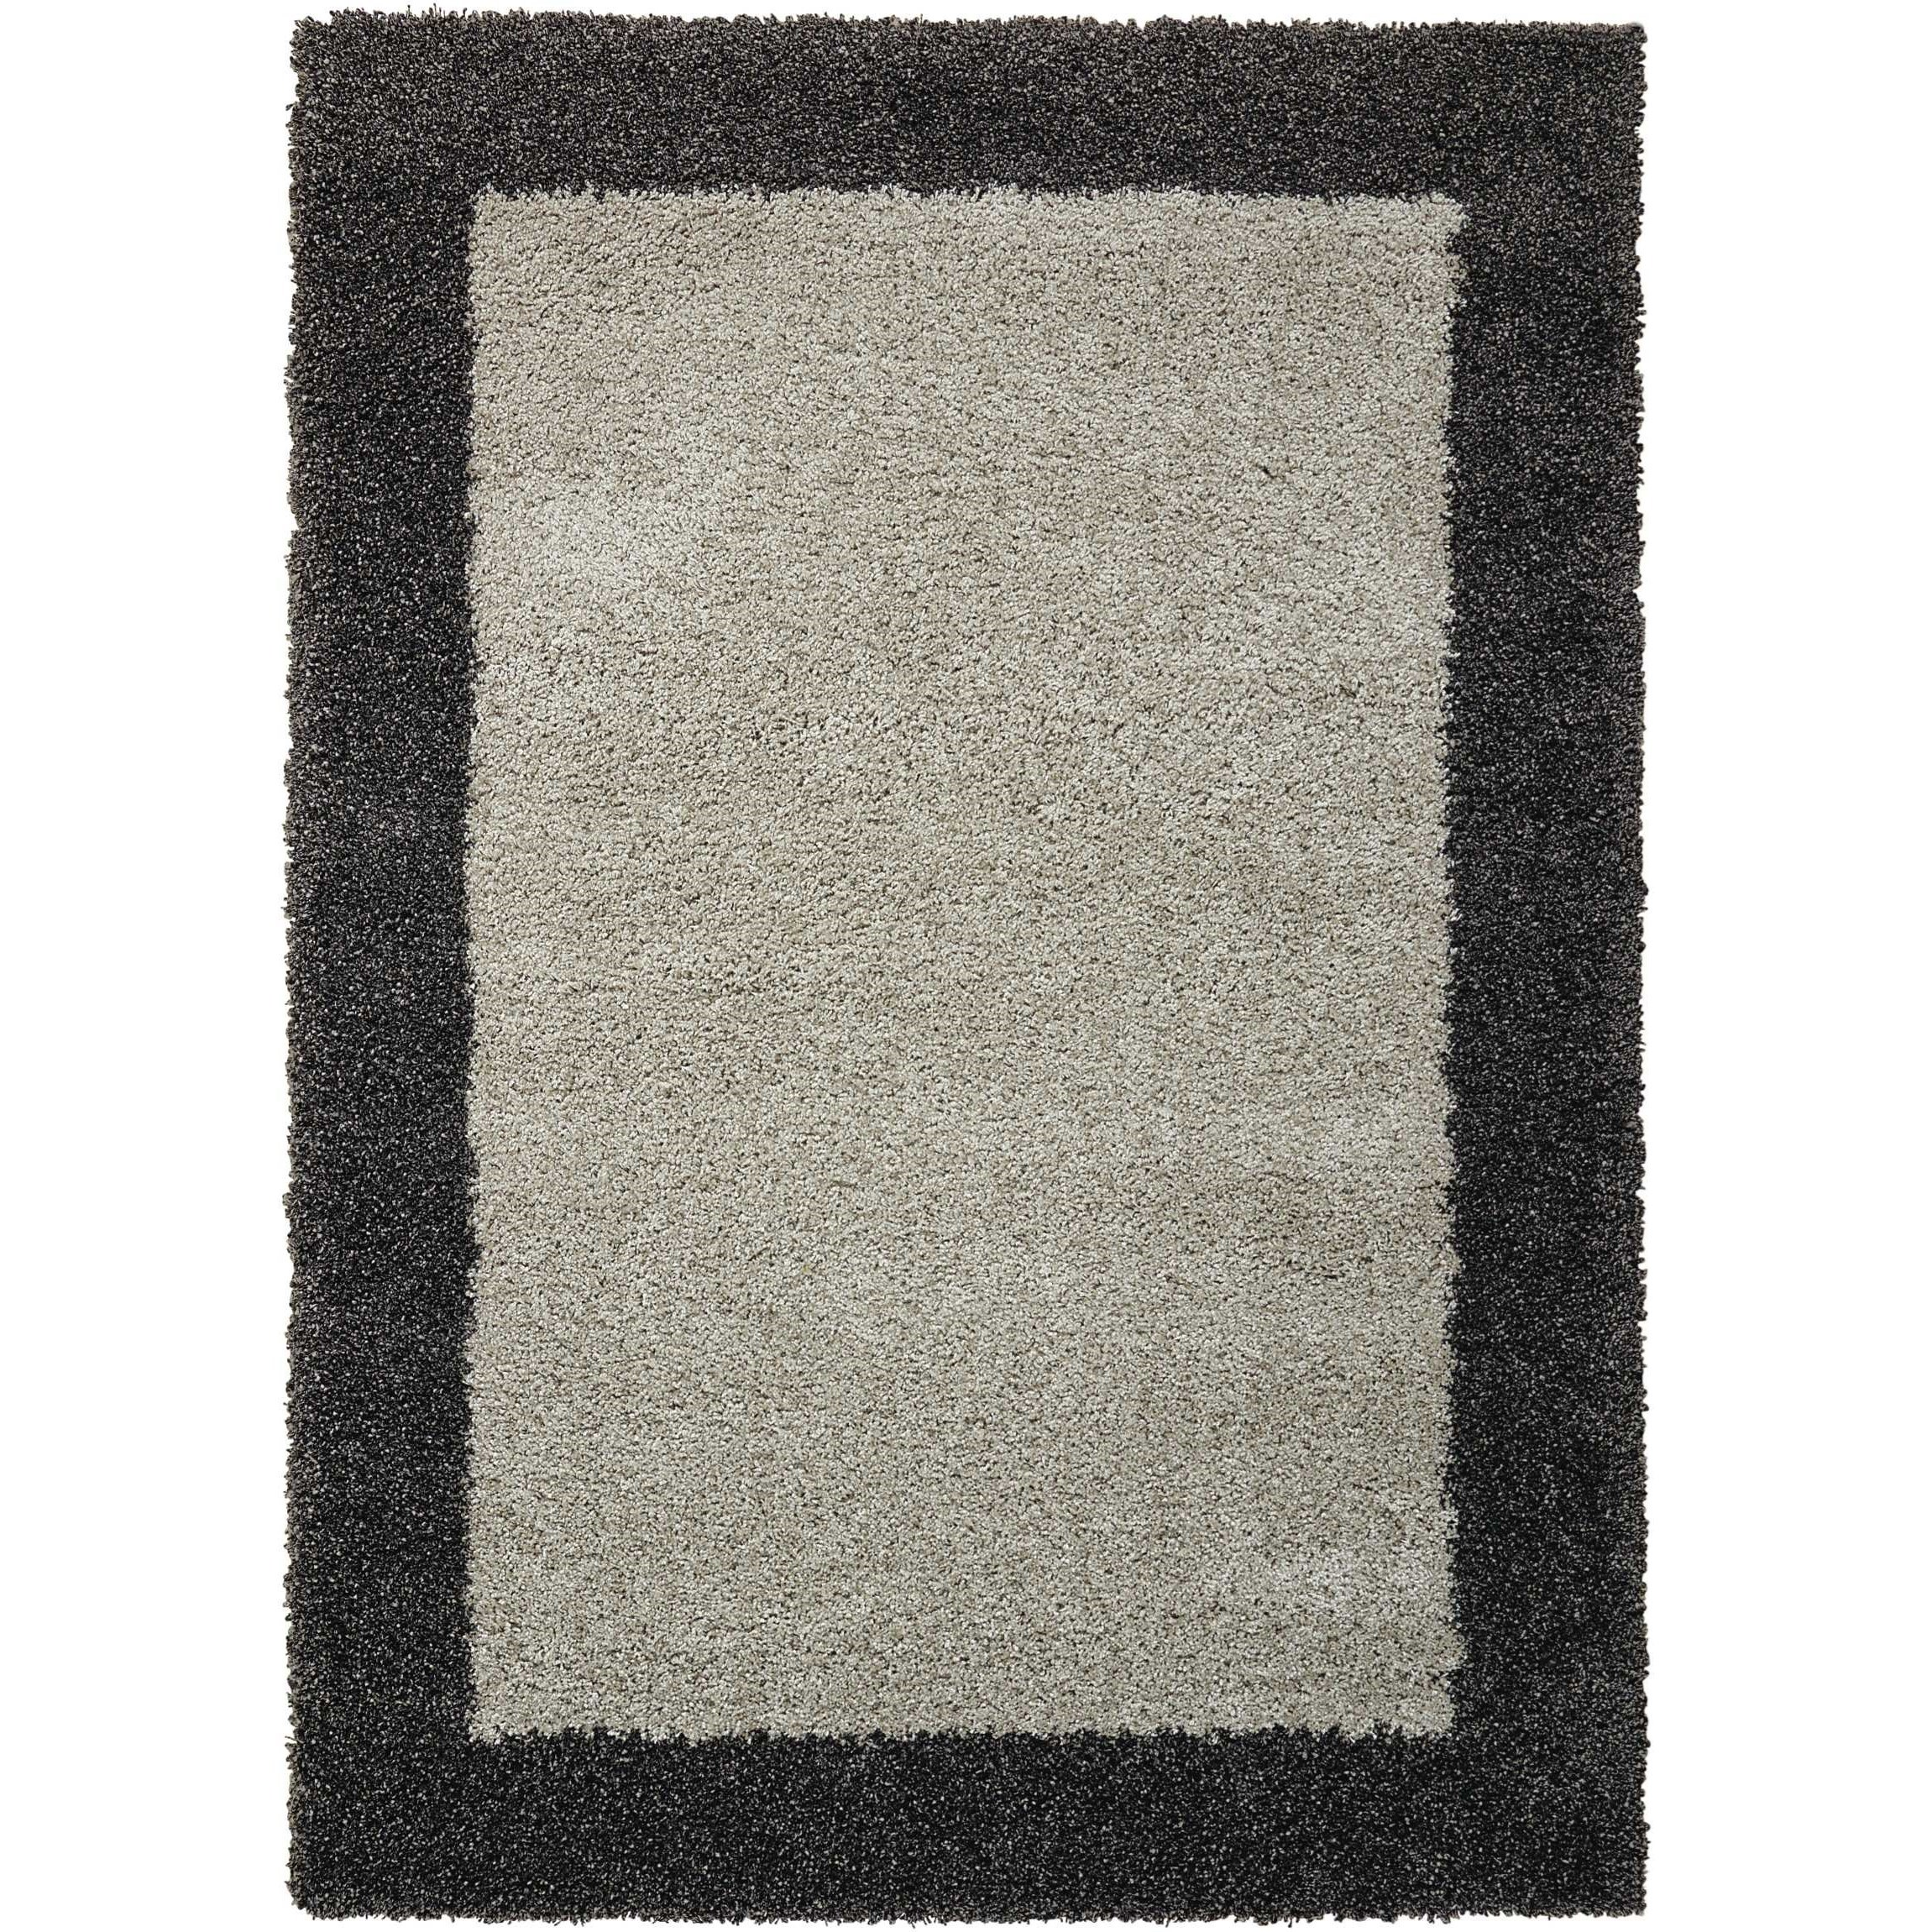 Amore Amore AMOR5 Grey 4'x6' Area Rug by Nourison at Home Collections Furniture